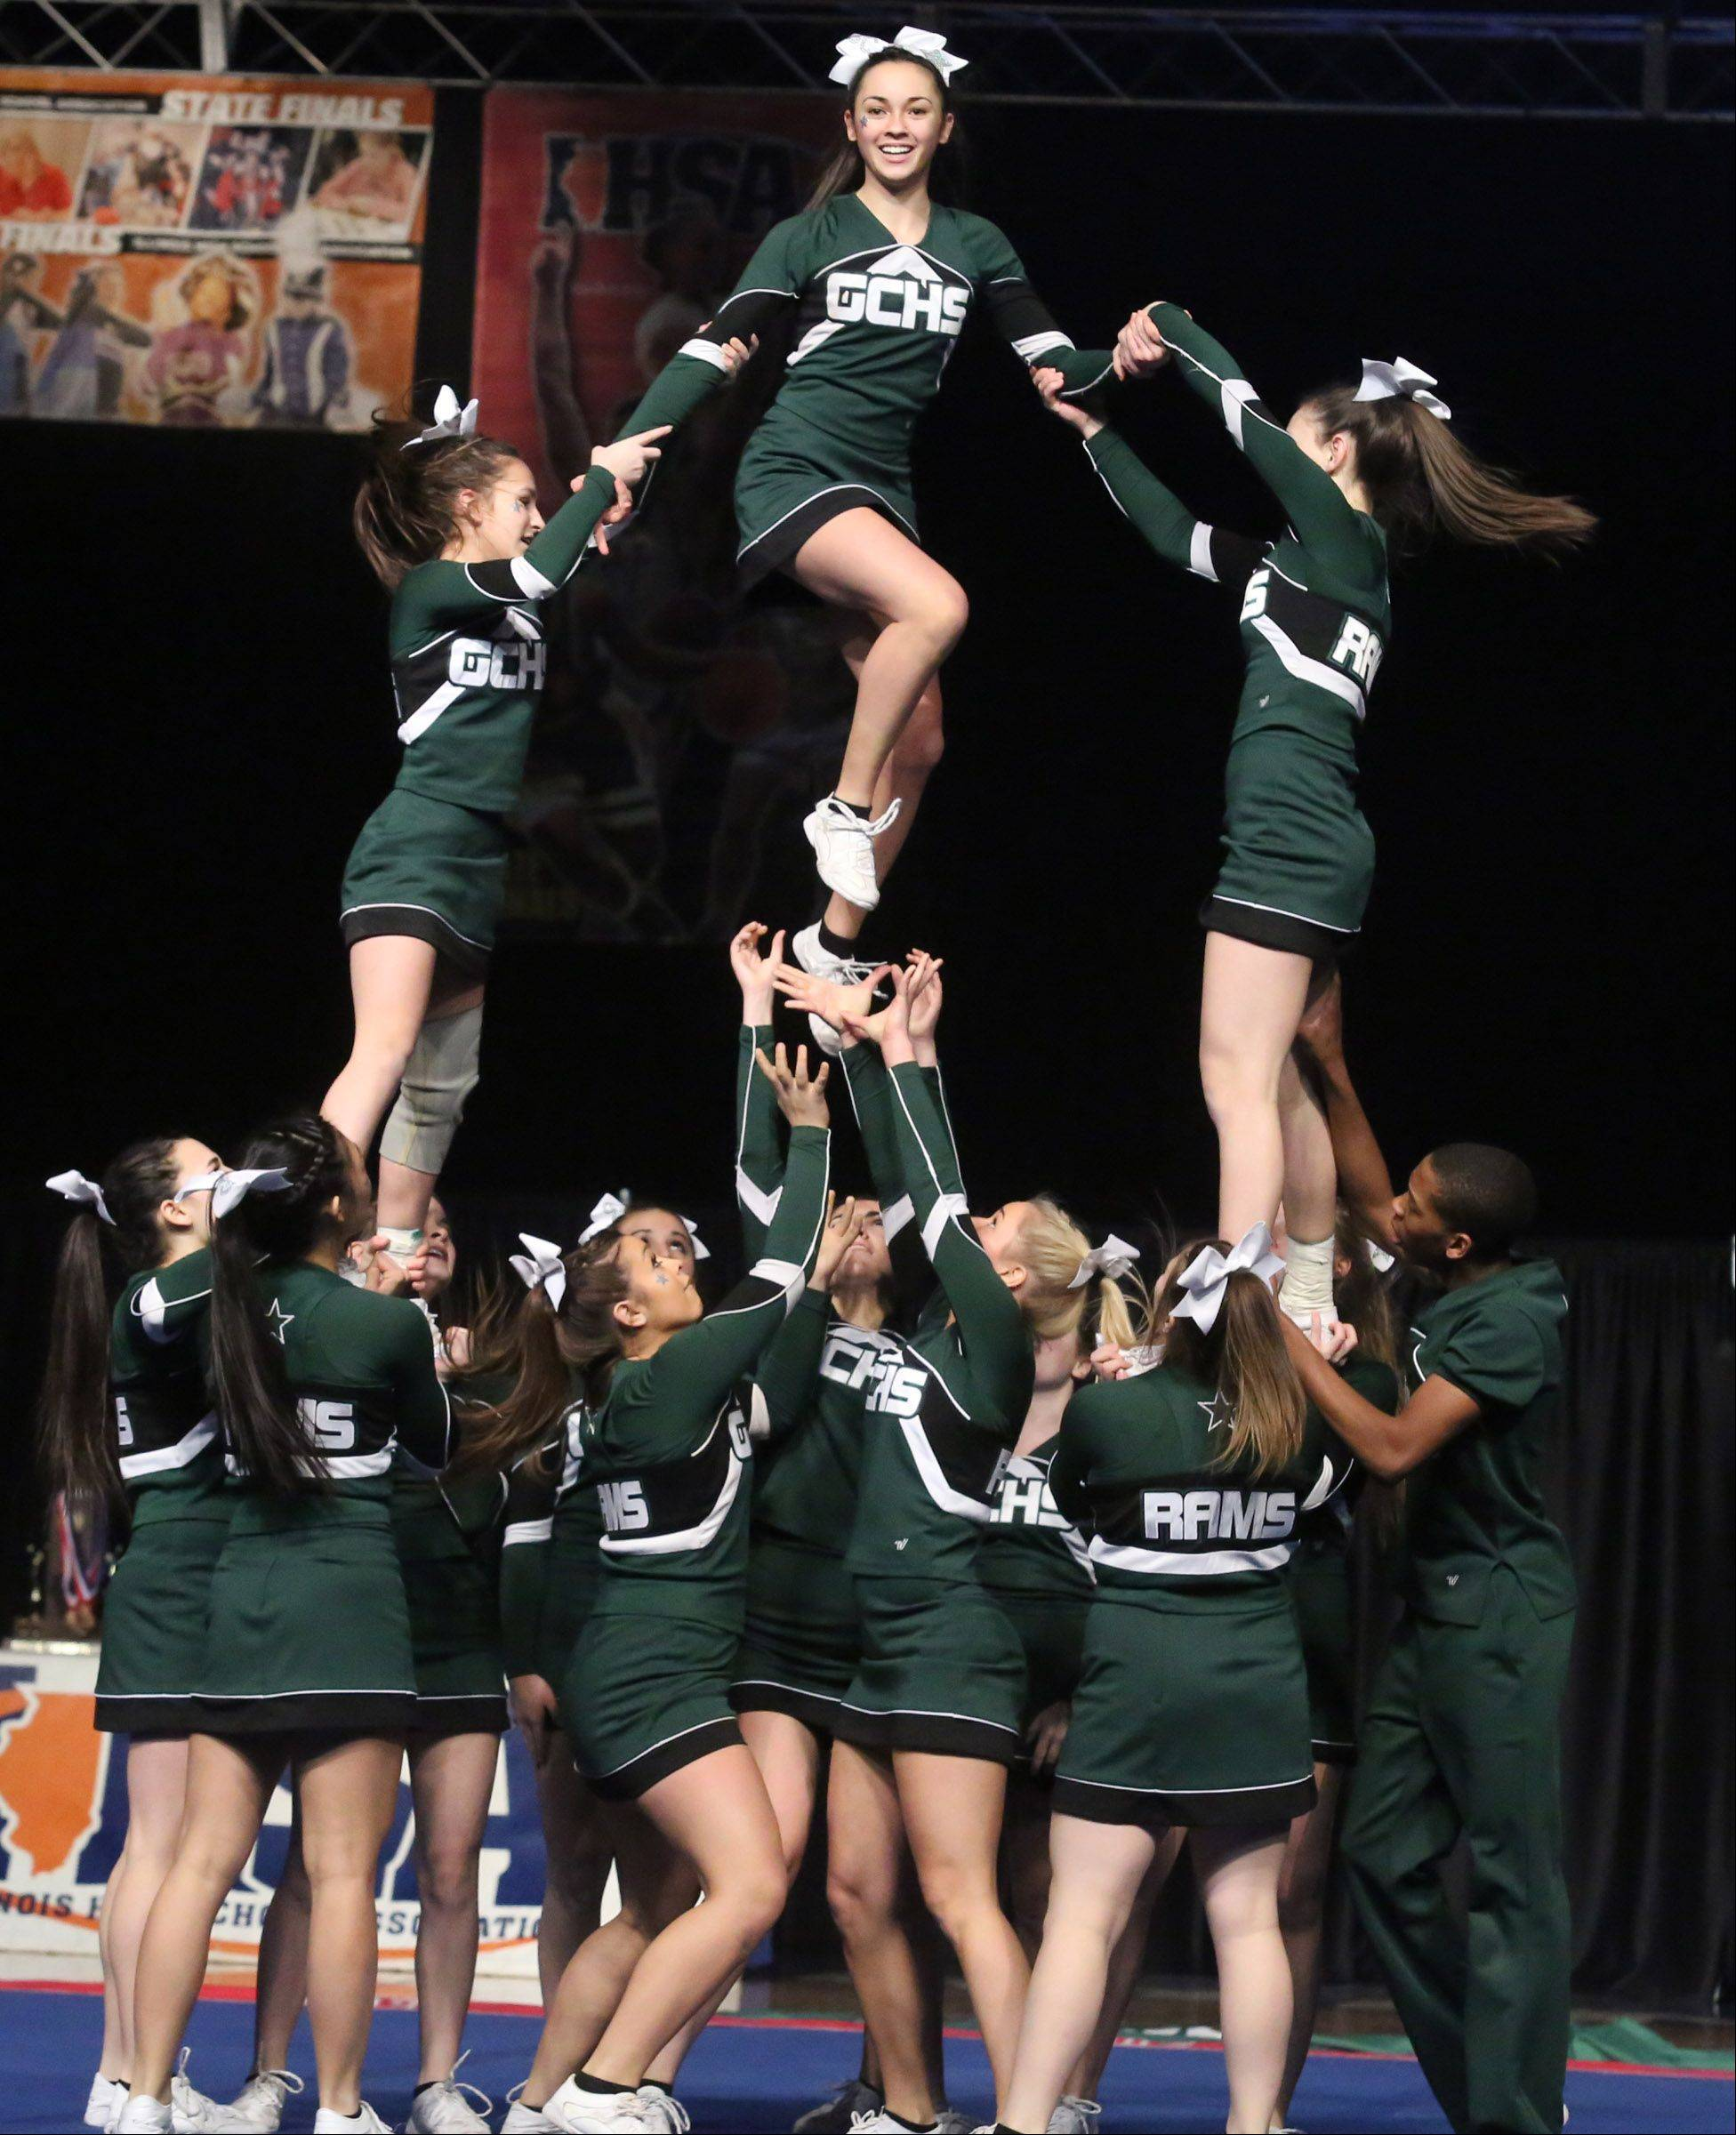 Grayslake Central High School's cheer team performs in the medium team category.